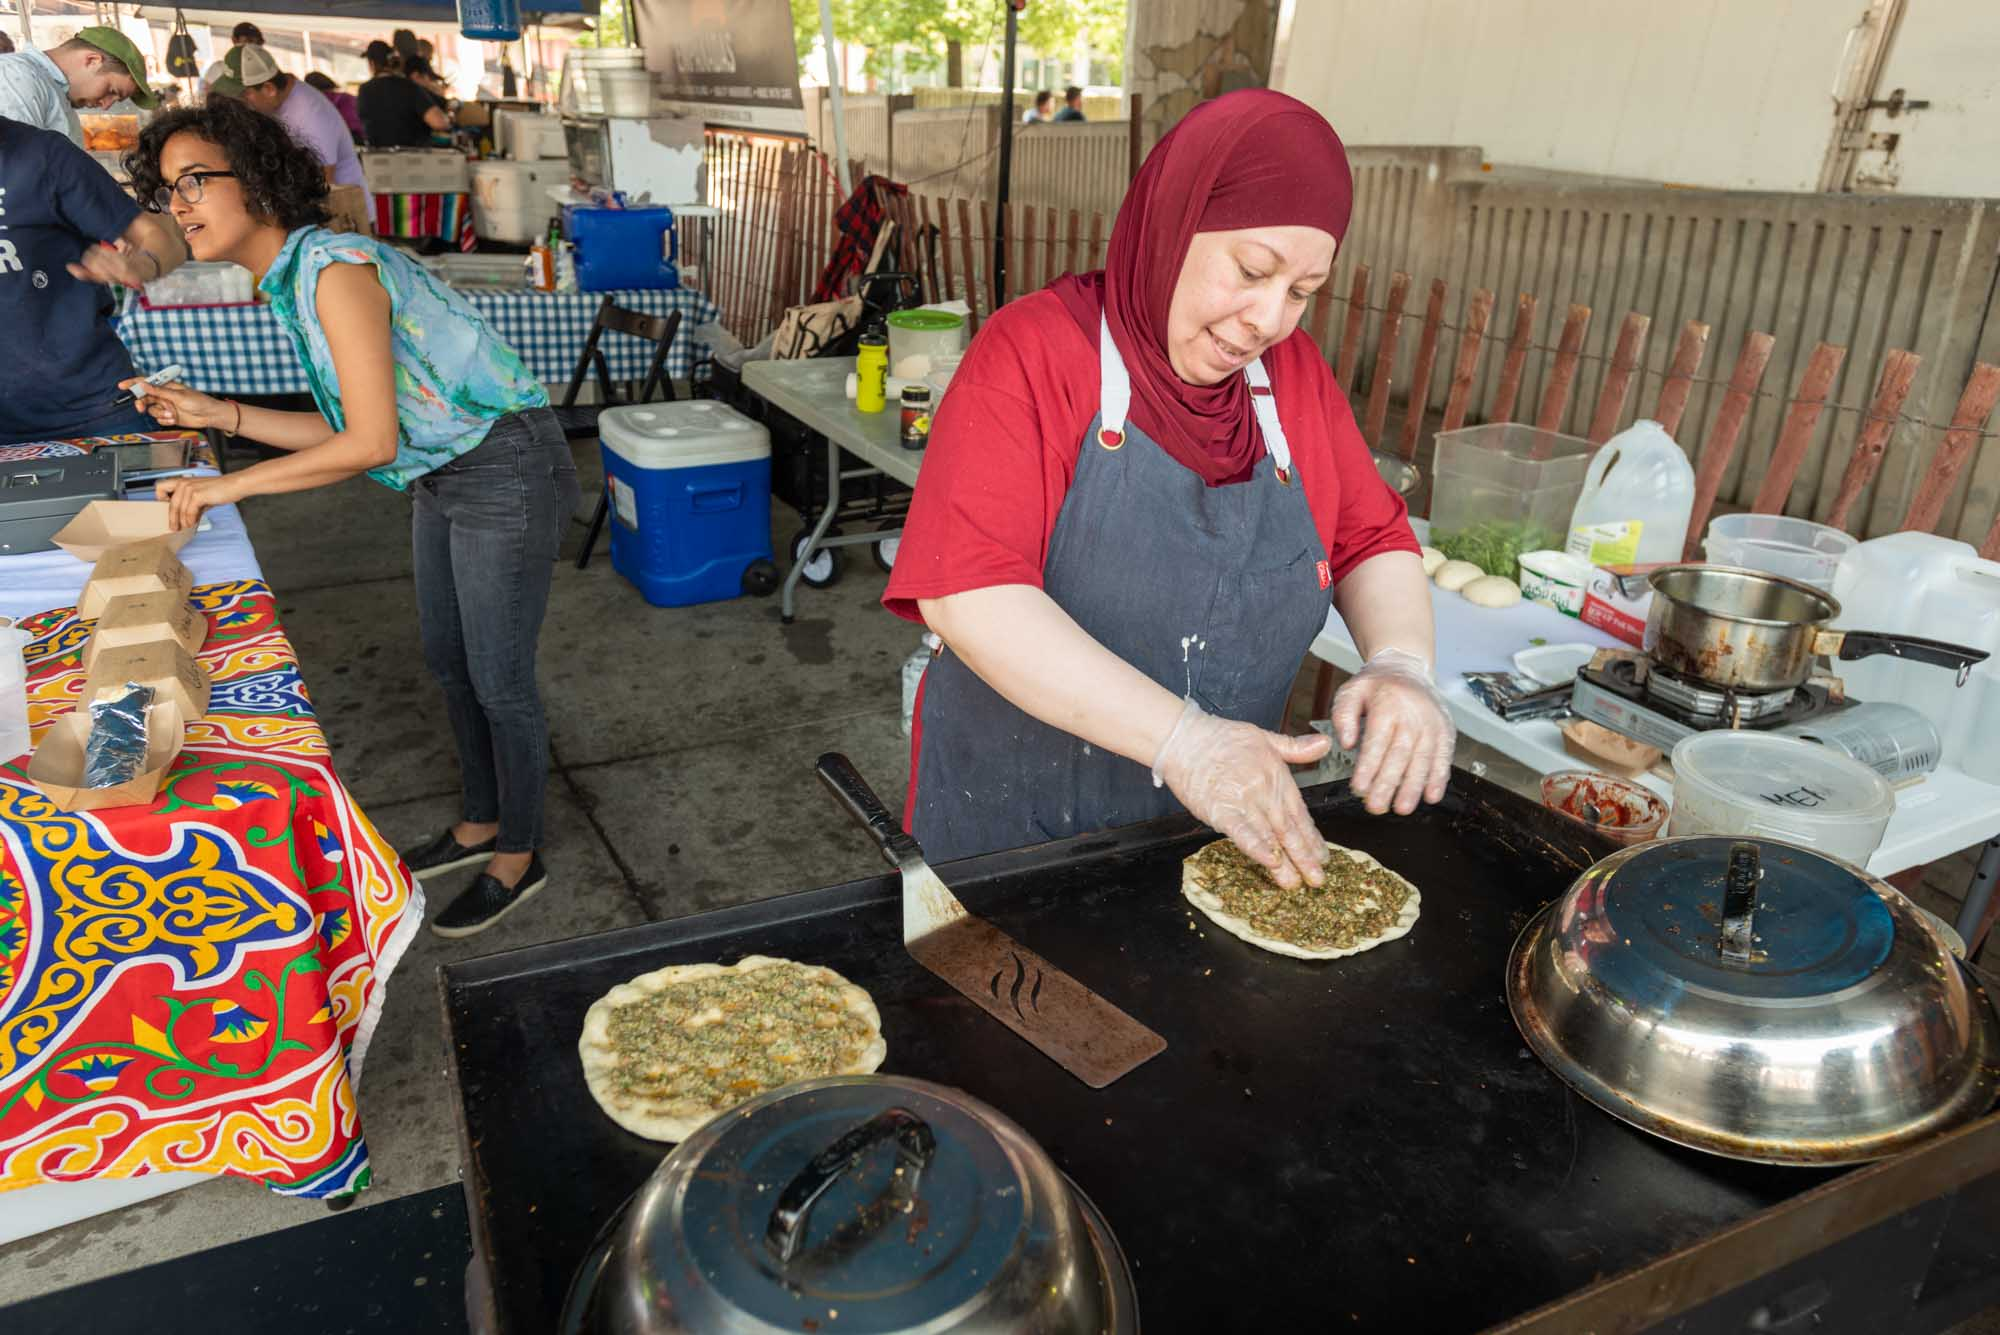 Chef Iman, featured in the photo above, arrived in the United States from Syria as a widow, without family accompanying her. As a member of the Mera Kitchen Collective, she prepares dishes from Syria for sale at the Baltimore Farmer's Market. Photo by Car